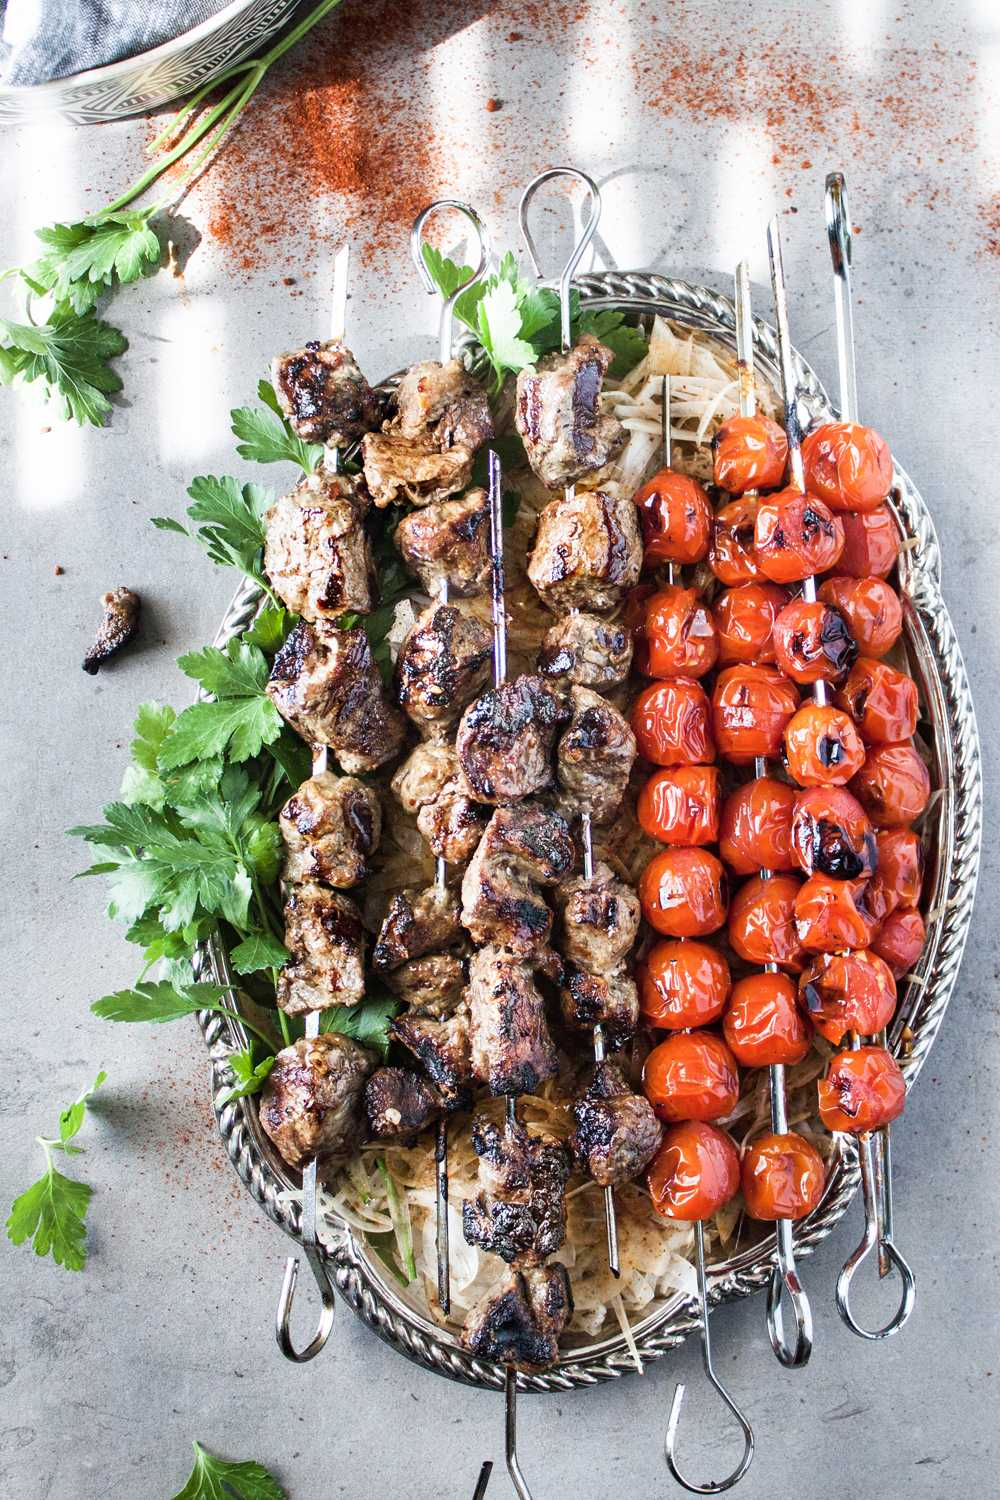 Shish Kebab Authentic Recipe Tips On Best Cuts Of Lamb